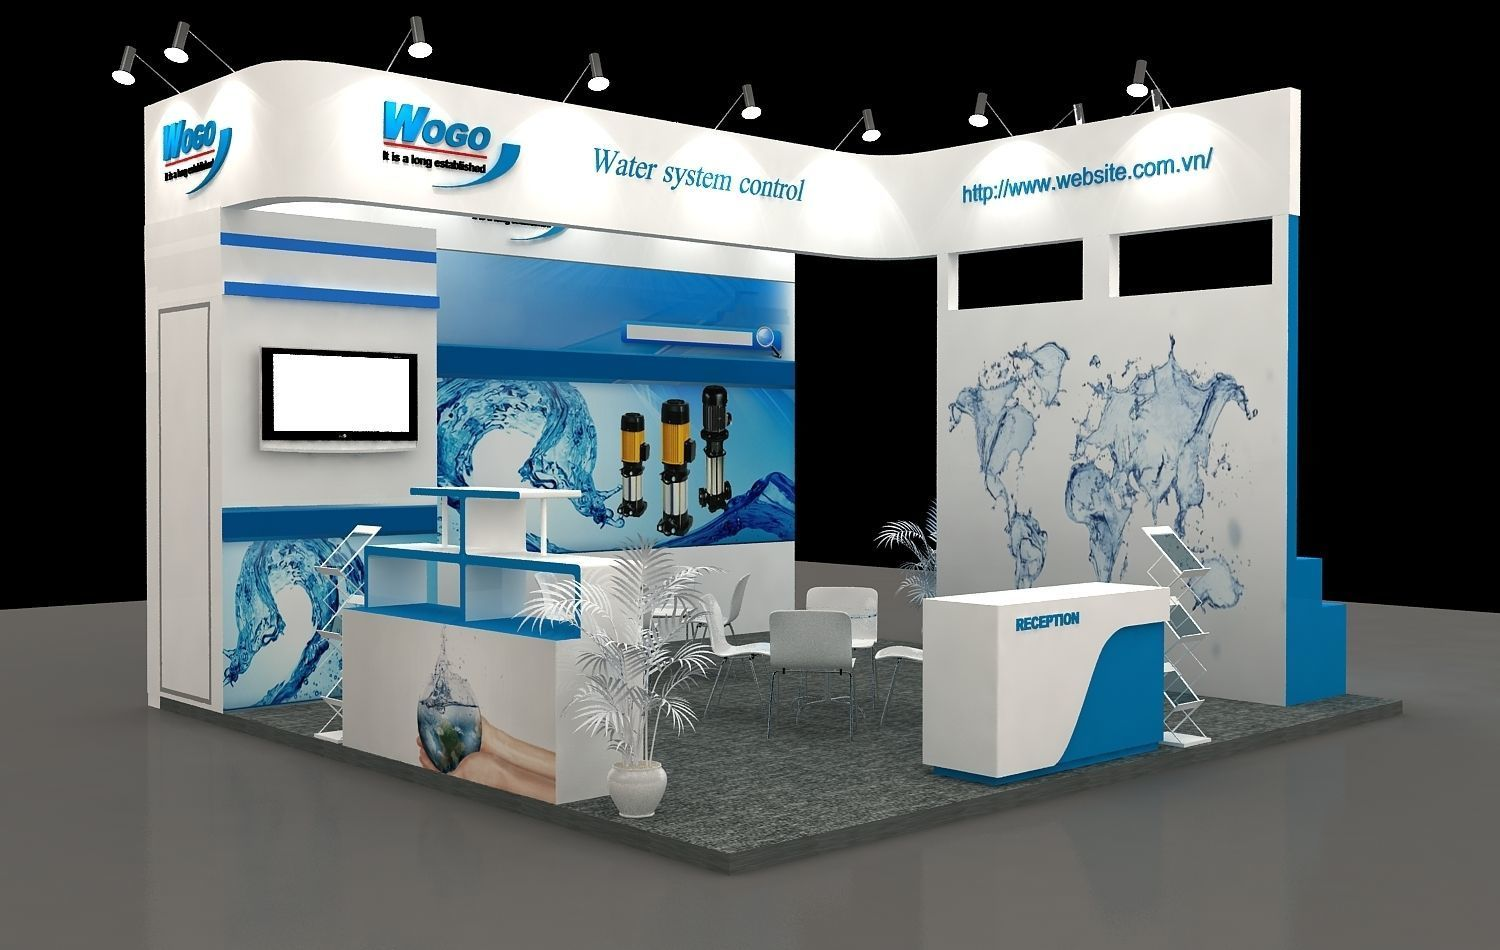 Exhibition Booth Obj : Exhibition booth 6x6m 3 sides open 3d model